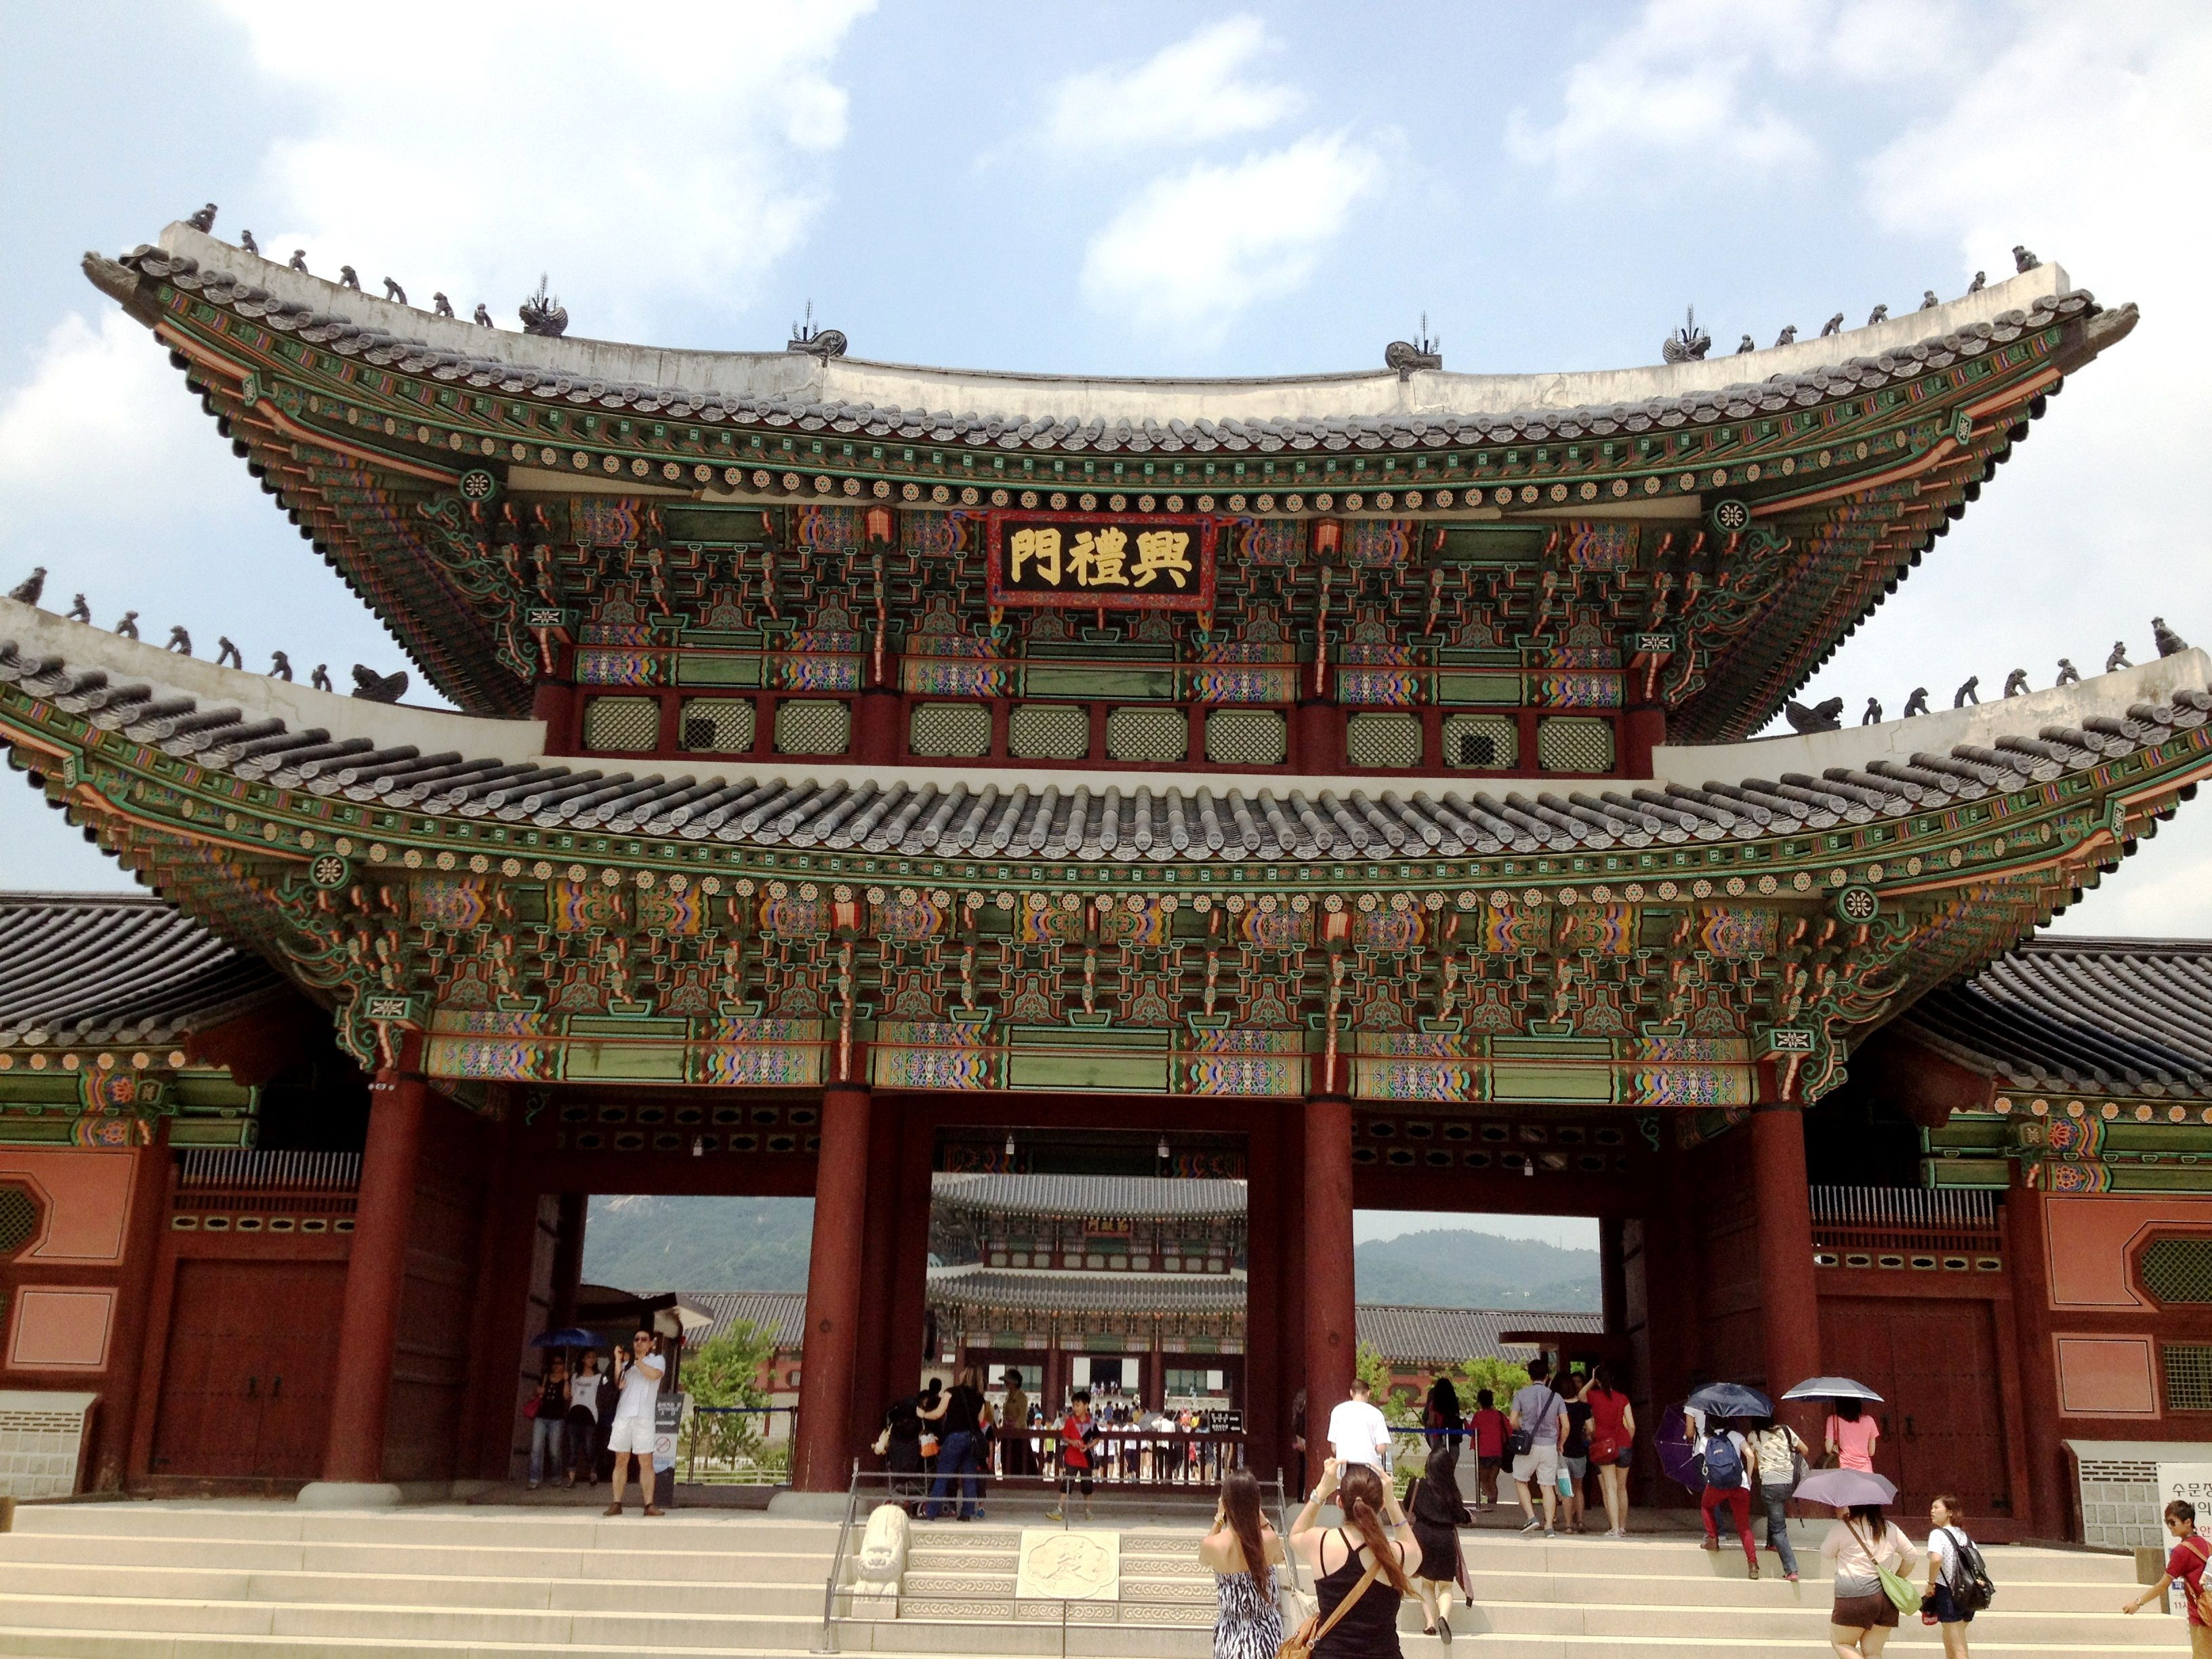 Gyeongbokgung Palace - Built in 1394 by the Joseon Dynastie